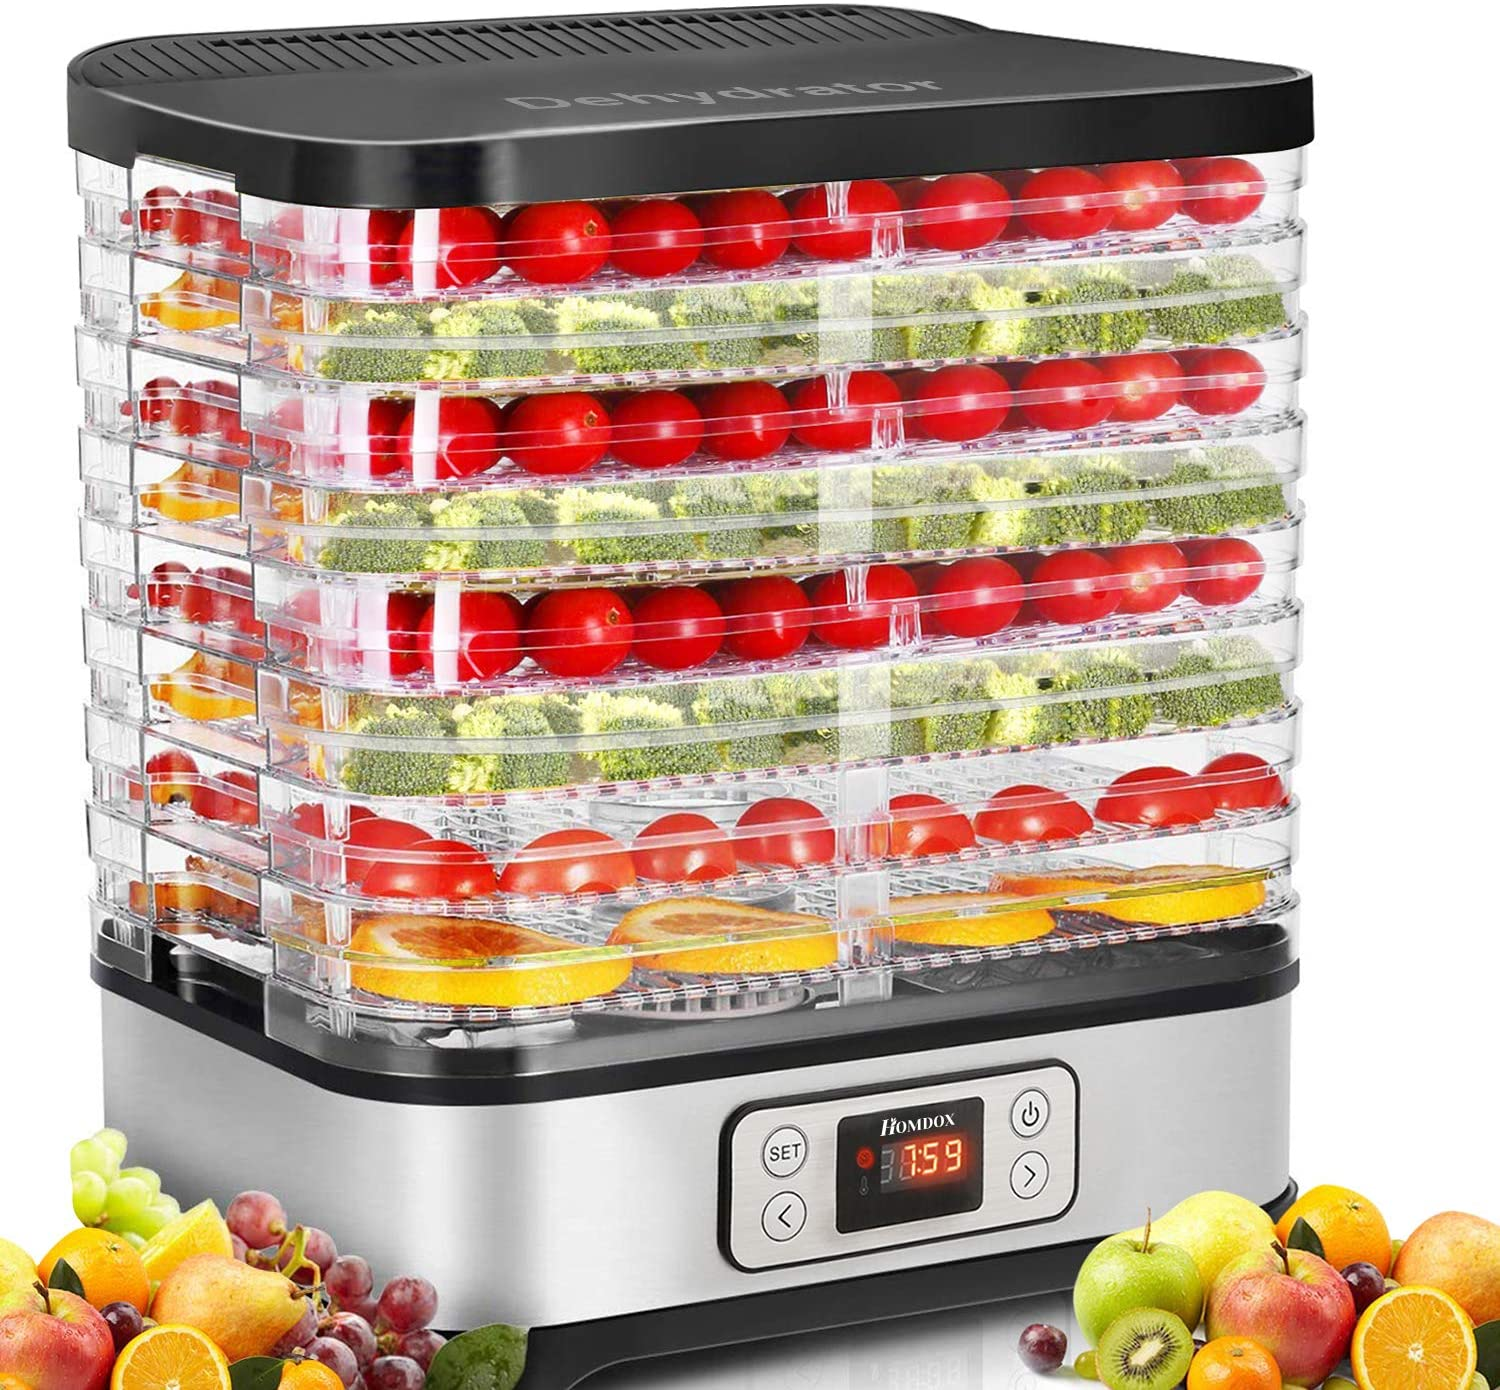 Homdox 8 Trays Food Dehydrator Machine with Temperature Control and Digital Timer